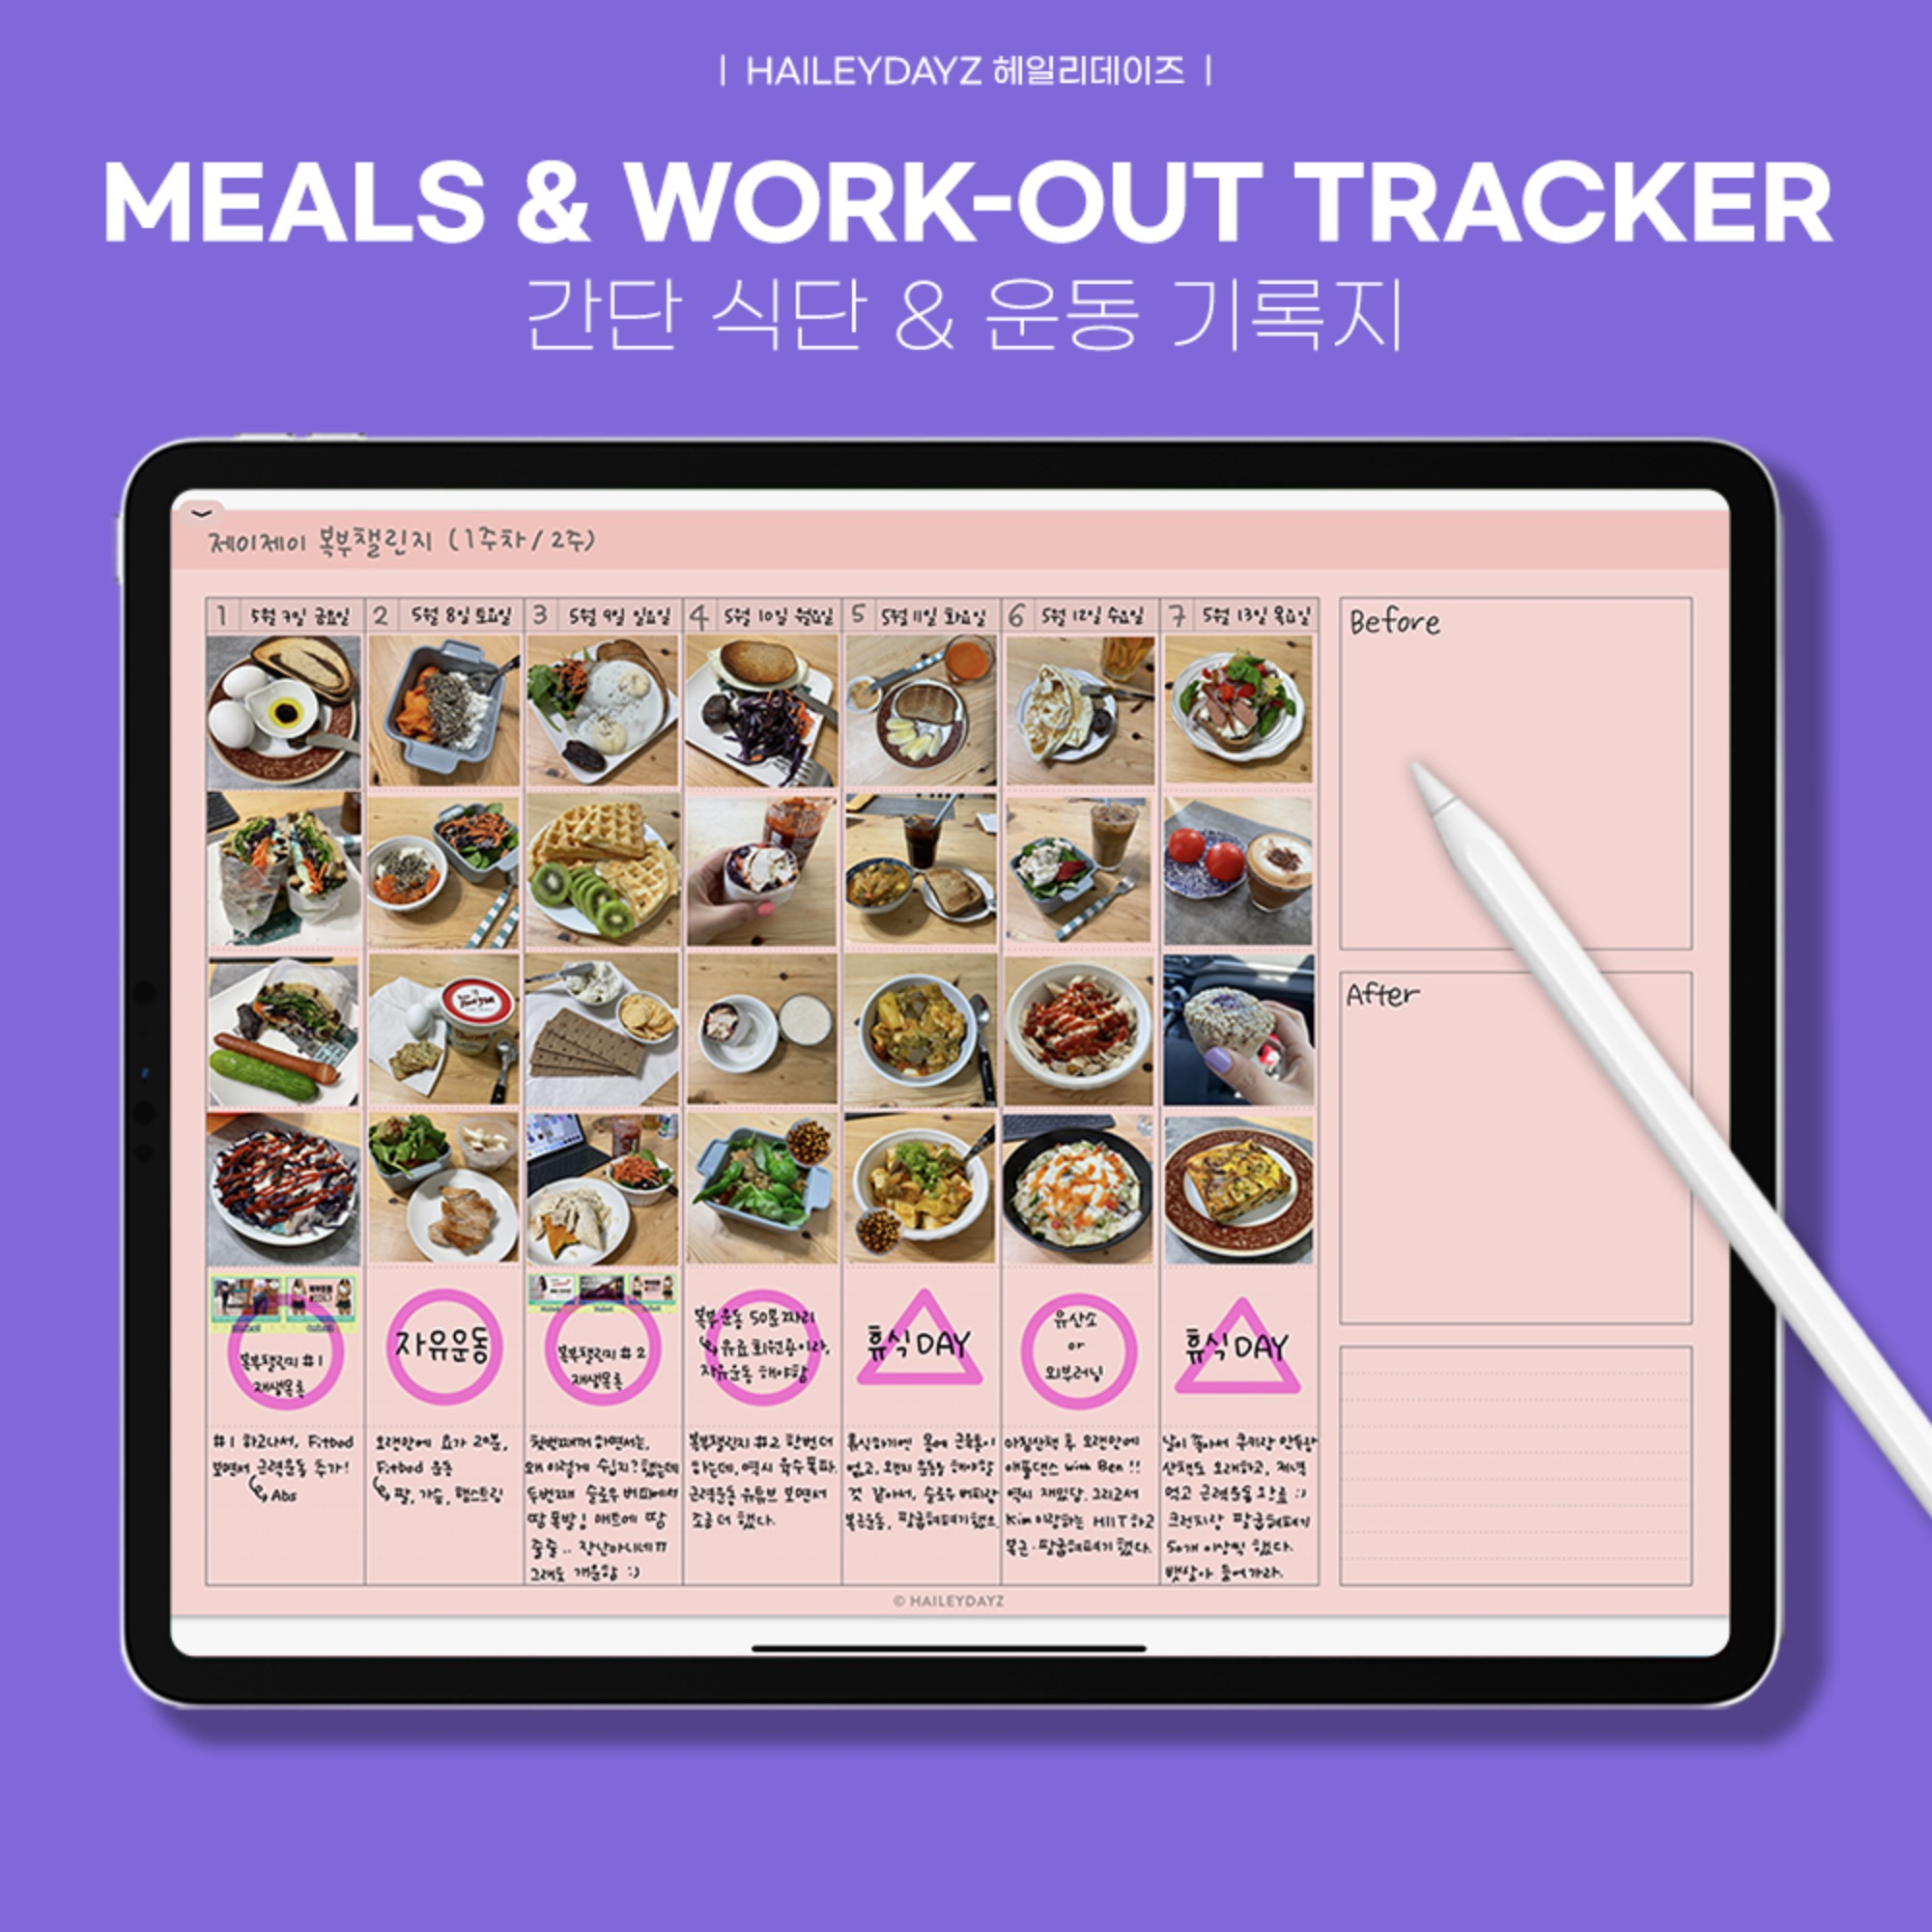 Meals & Work out tracker